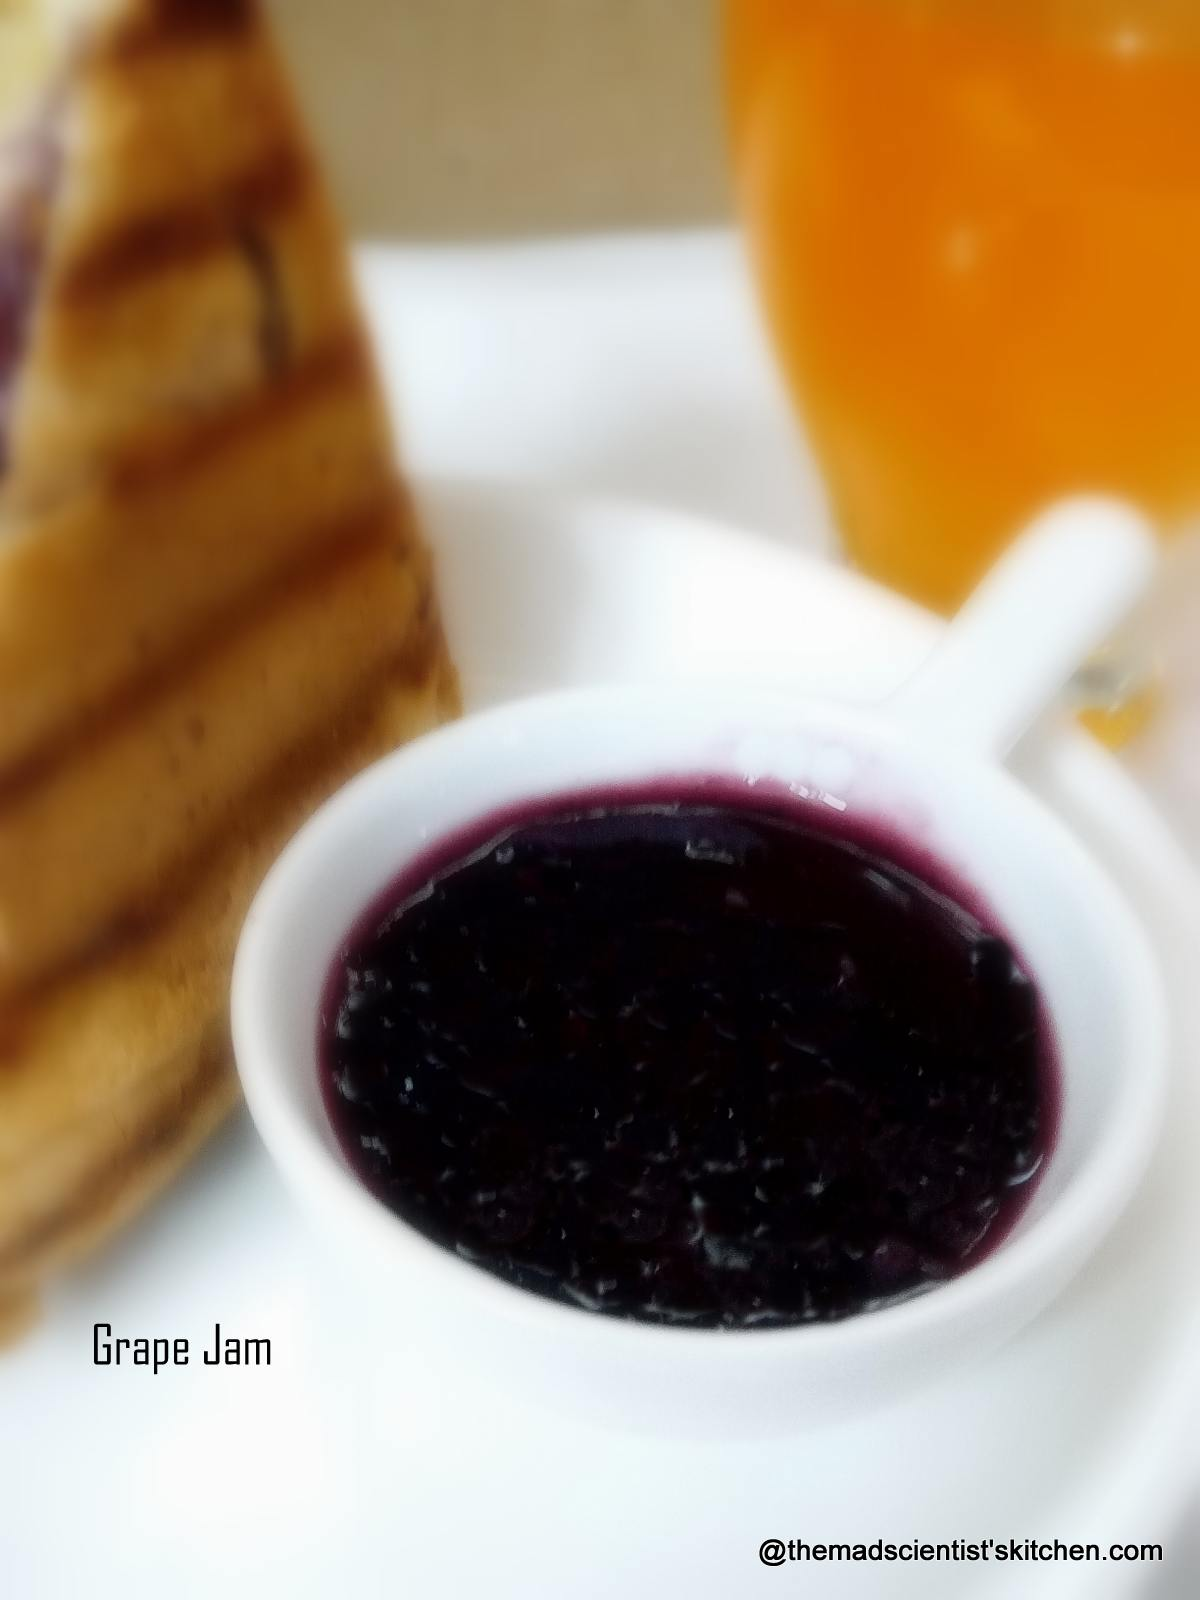 Grape Jam|Black Grapes Jam| Grape Jelly